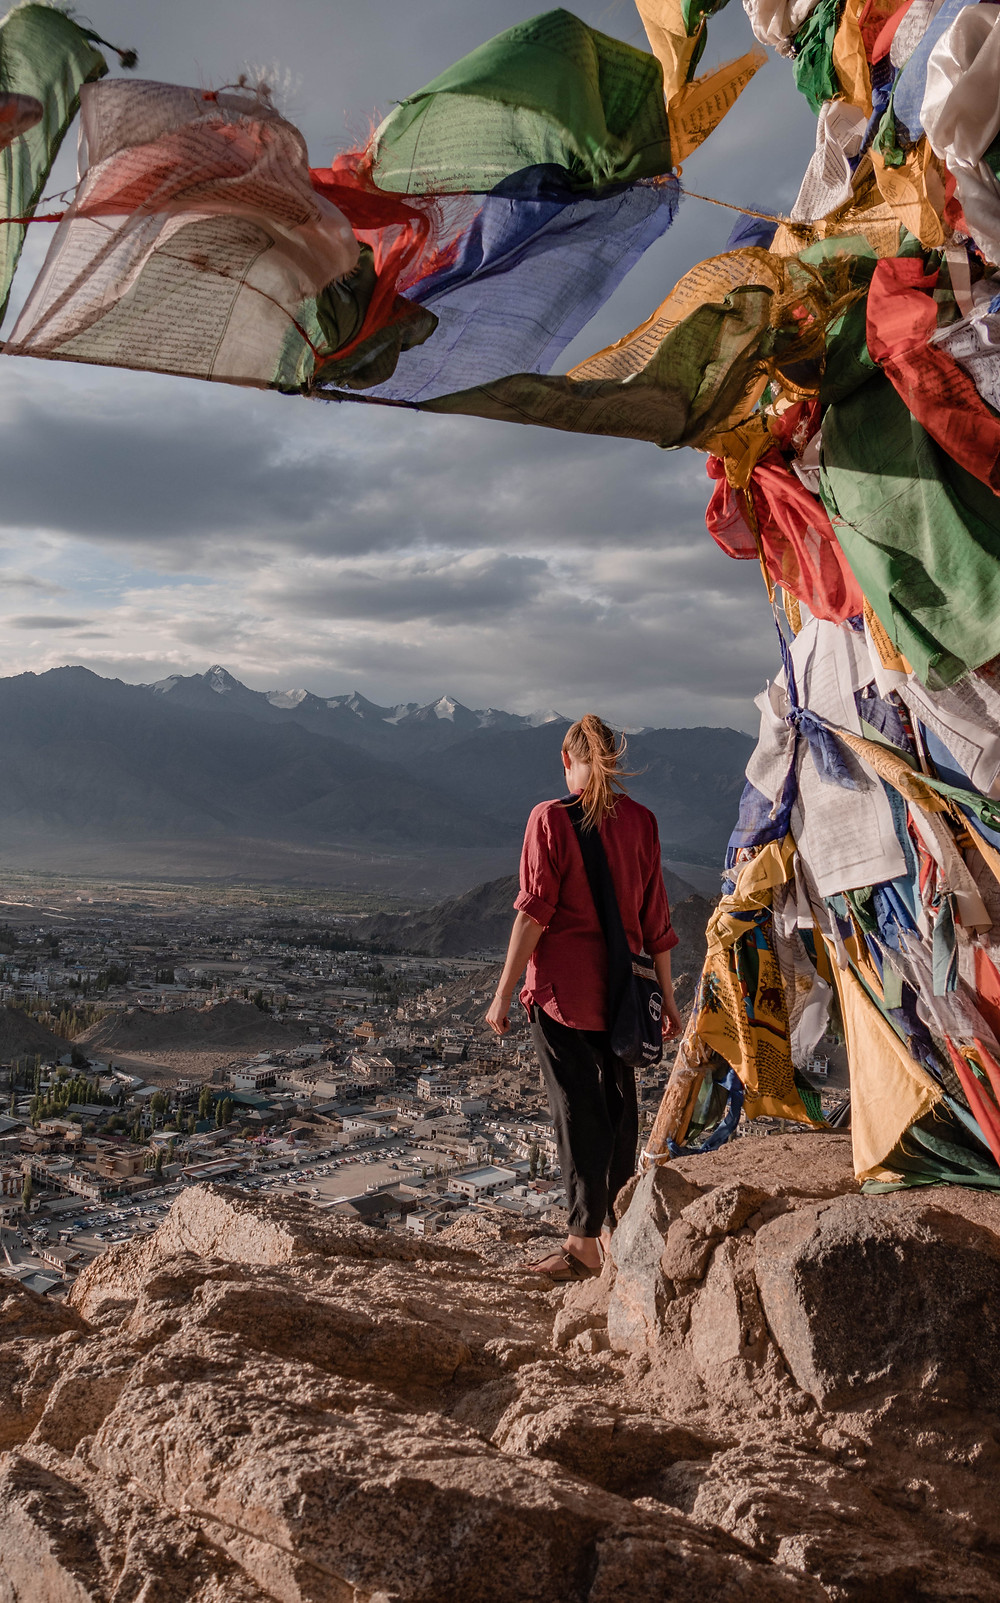 Girl overlooking Indian town with Buddhist prayer flags